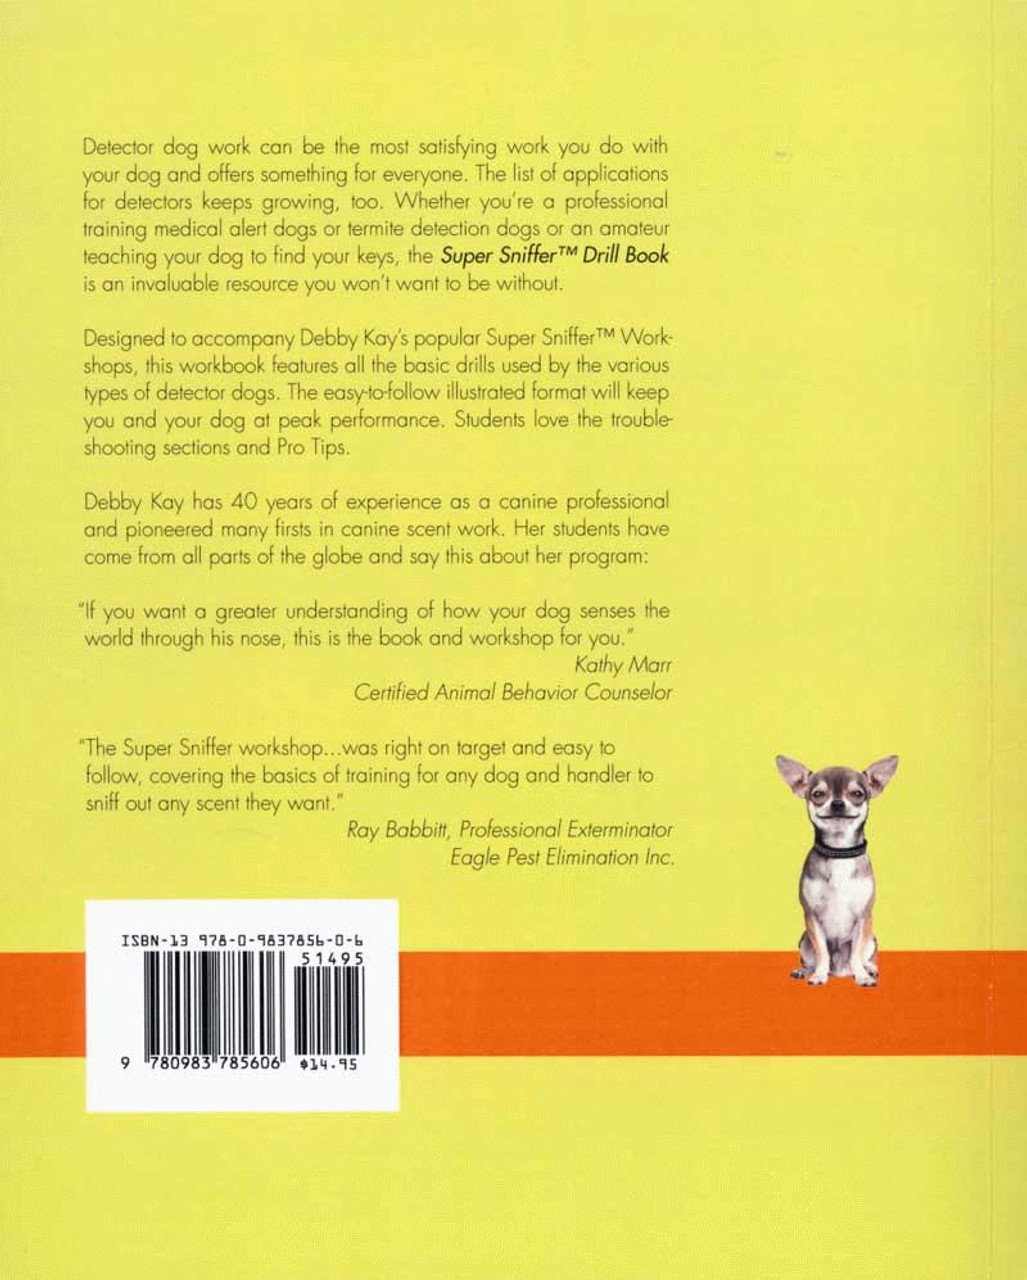 Ebook super sniffer drill book a workbook for training detector ebook super sniffer drill book a workbook for training detector dogs dogwise fandeluxe Gallery